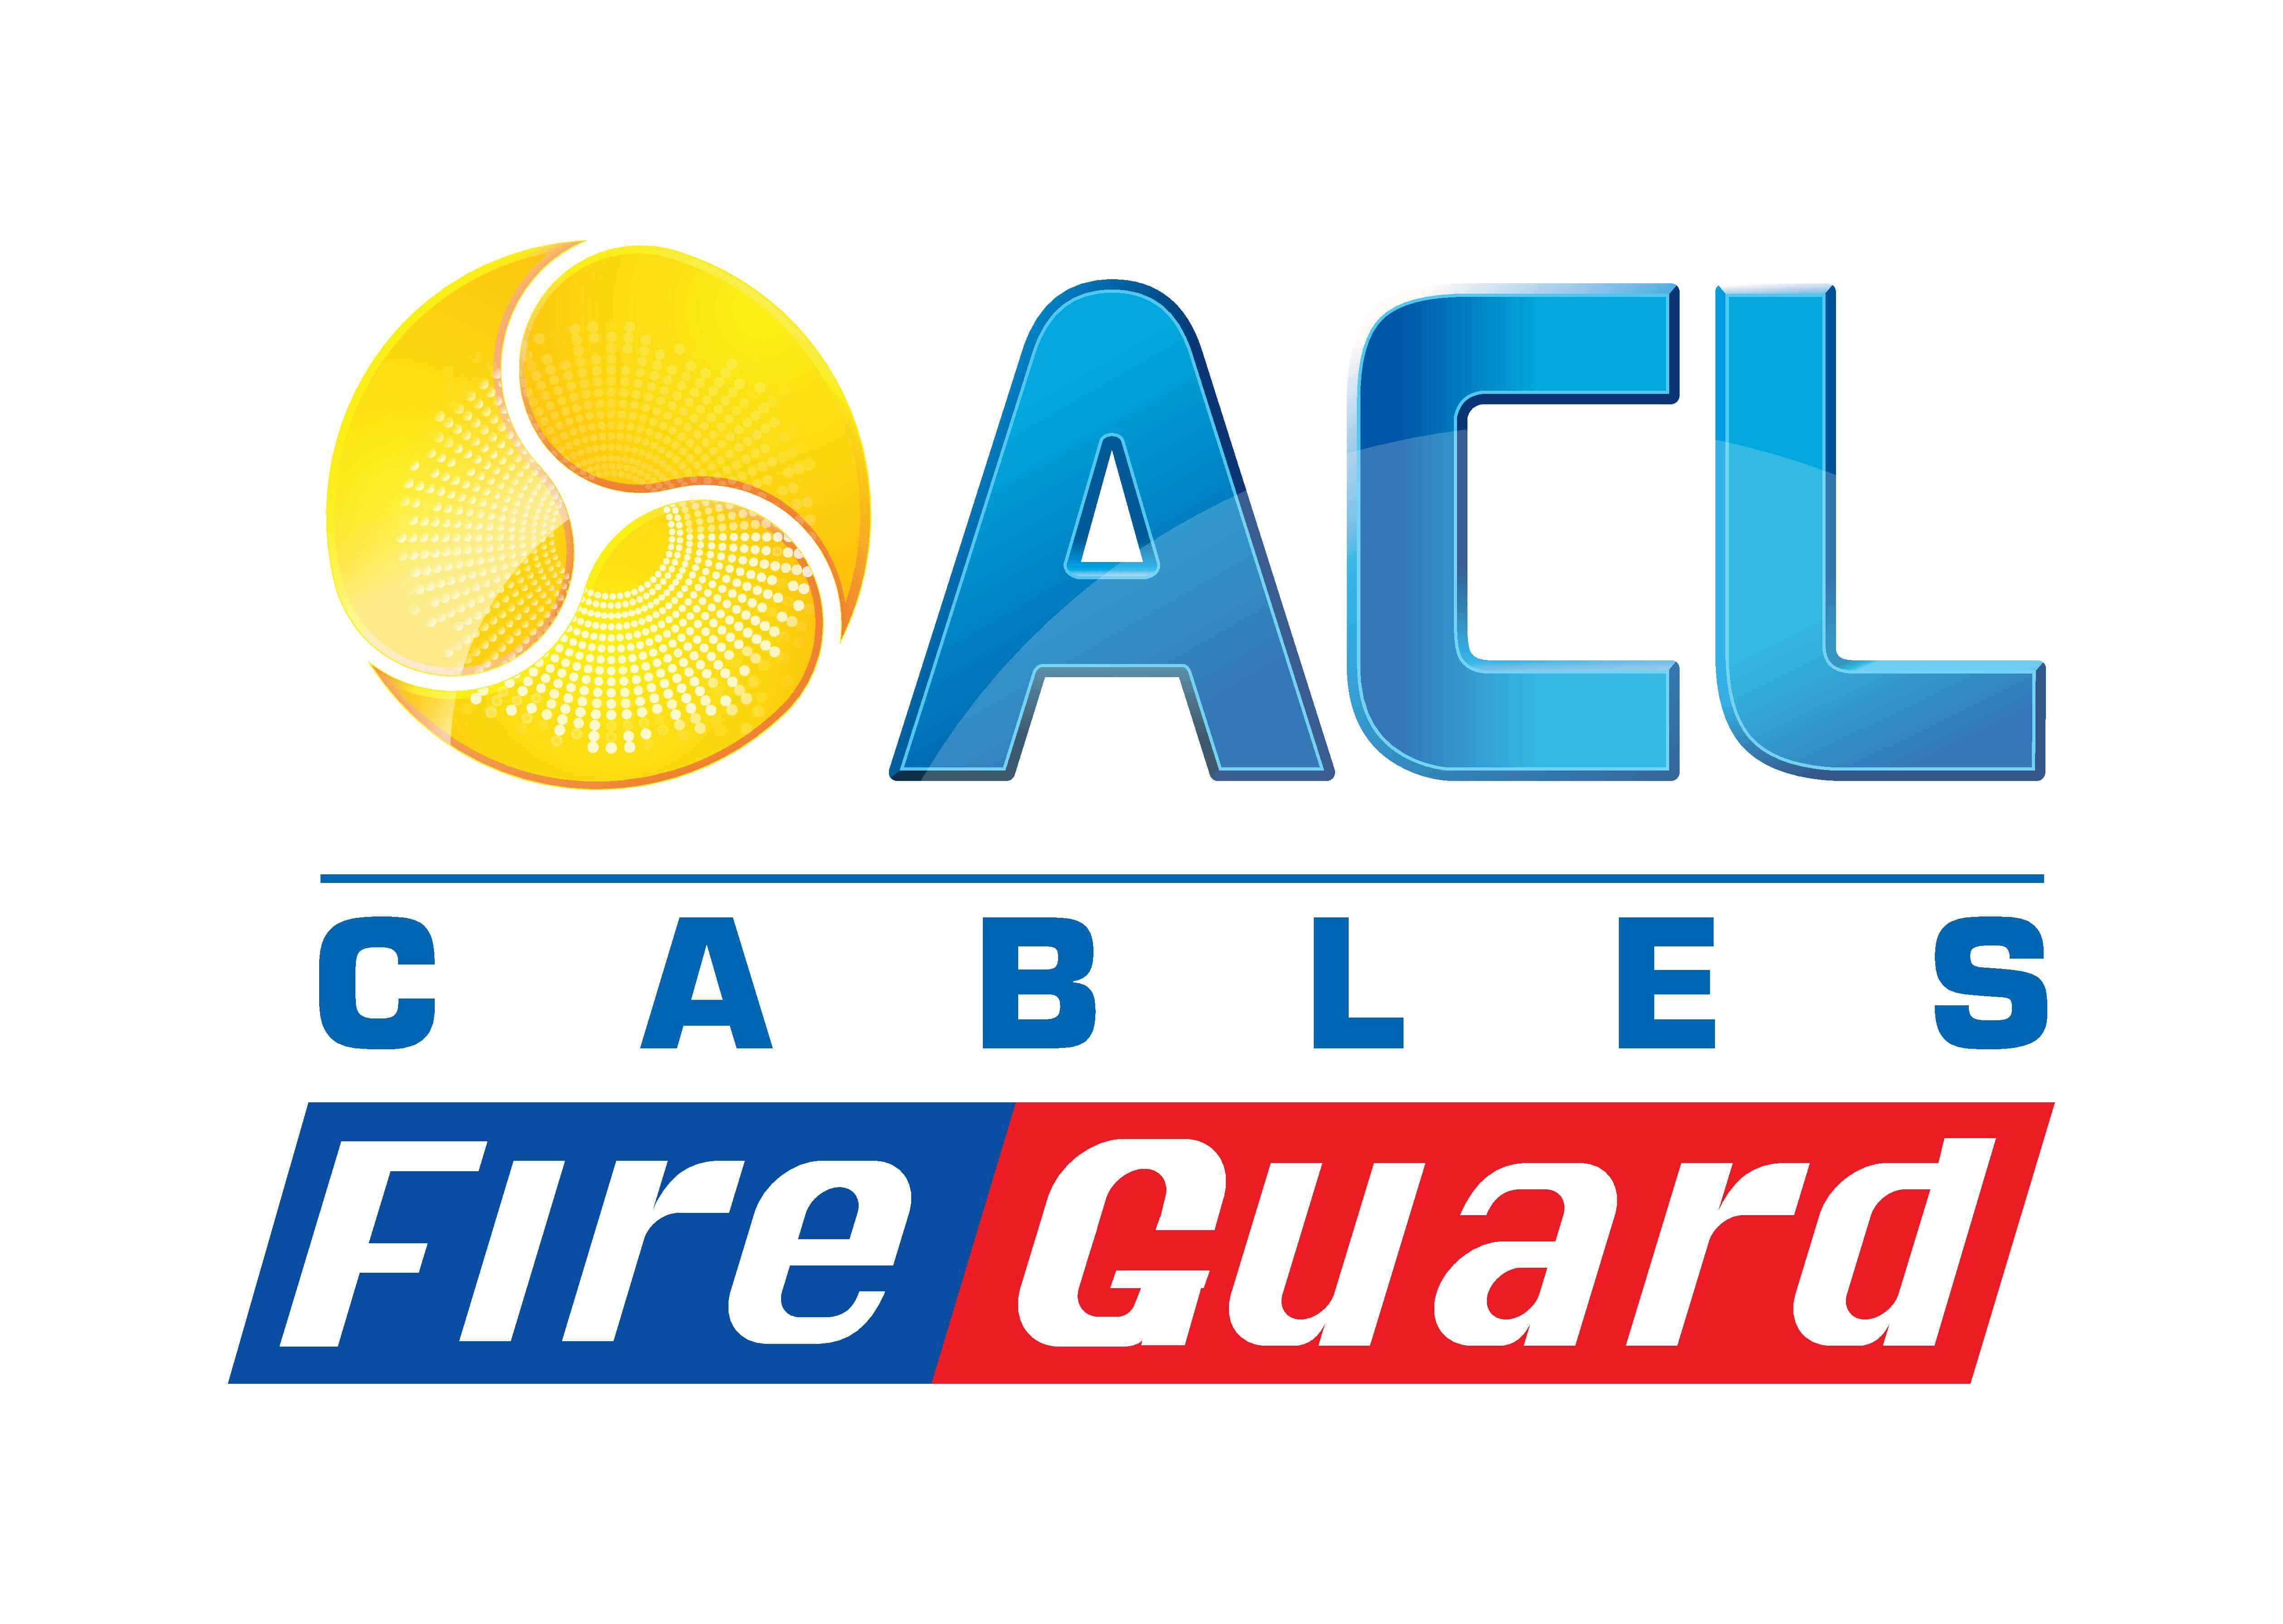 Acl Cables Plc The Largest Manufacturer Of In Sri Lanka Panel Wiring Colour Codes Uk Fire Guard Brand Celebrates 13 Years Protecting Hom